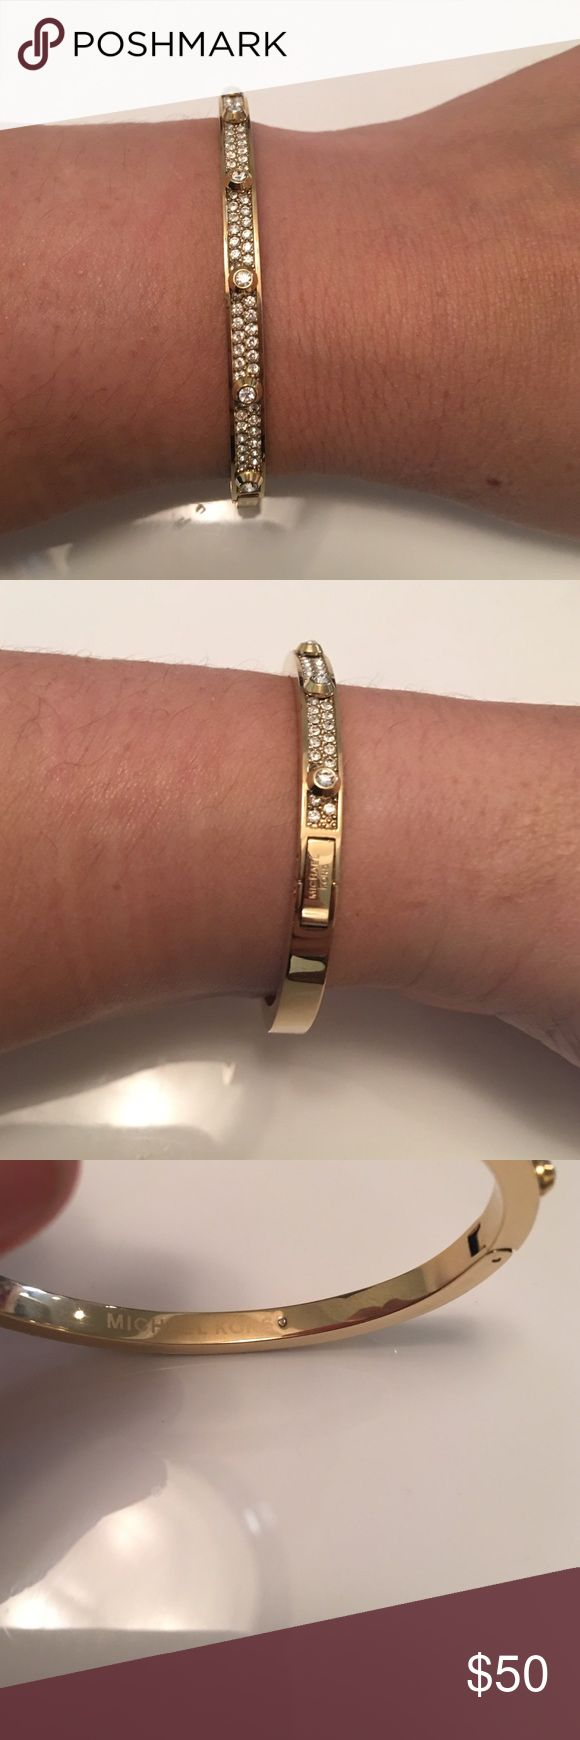 Michael Kors Gold crystal bracelet Michael Kors crystal bracelet. Stainless steel with ion plated in gold tone.No trades. Michael Kors Jewelry Bracelets